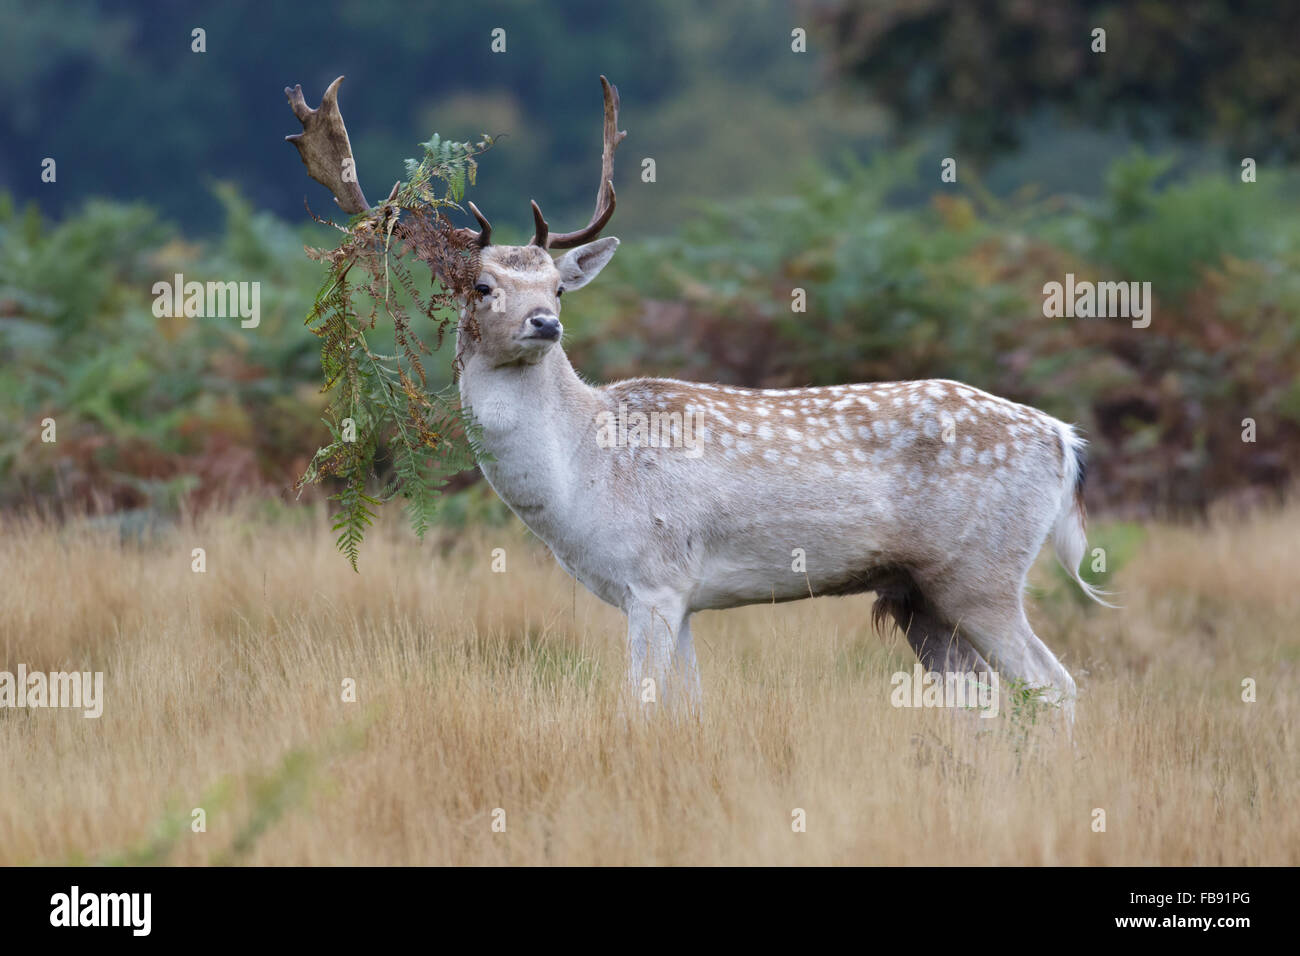 Pale coloured Fallow Deer rut buck (Dama dama) with bracken hanging from its' antlers. - Stock Image